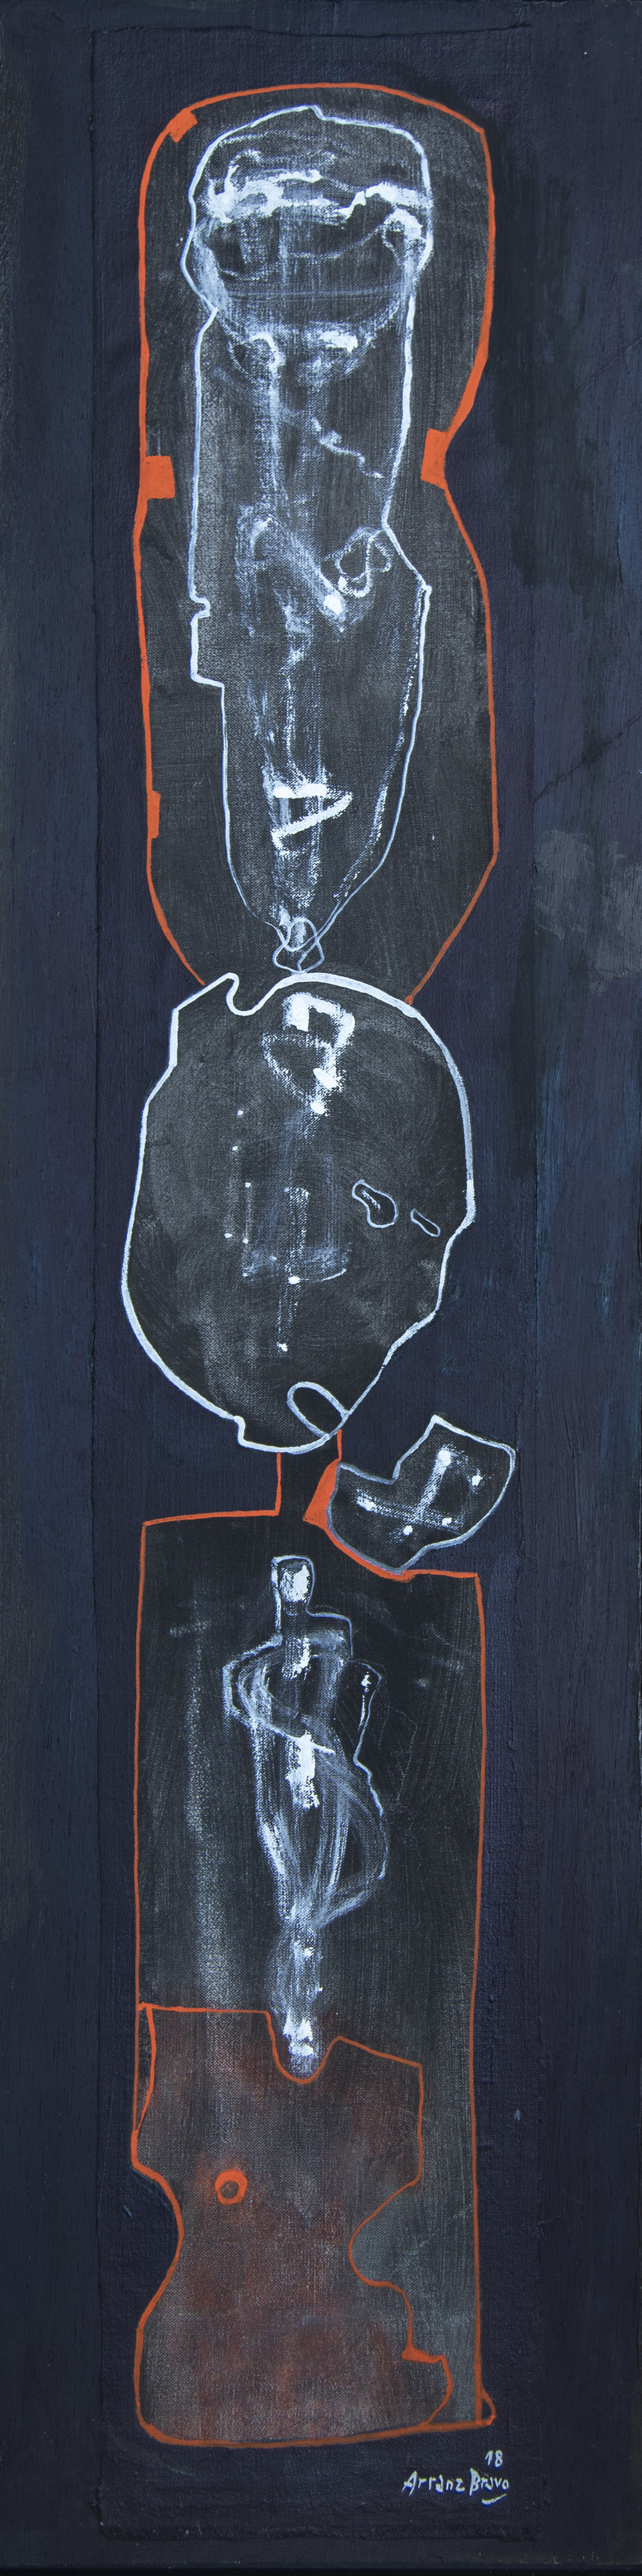 Yeoman II, oil on canvas on board, 44 x 11.2 in. (112 x 28.5 cm), 2018